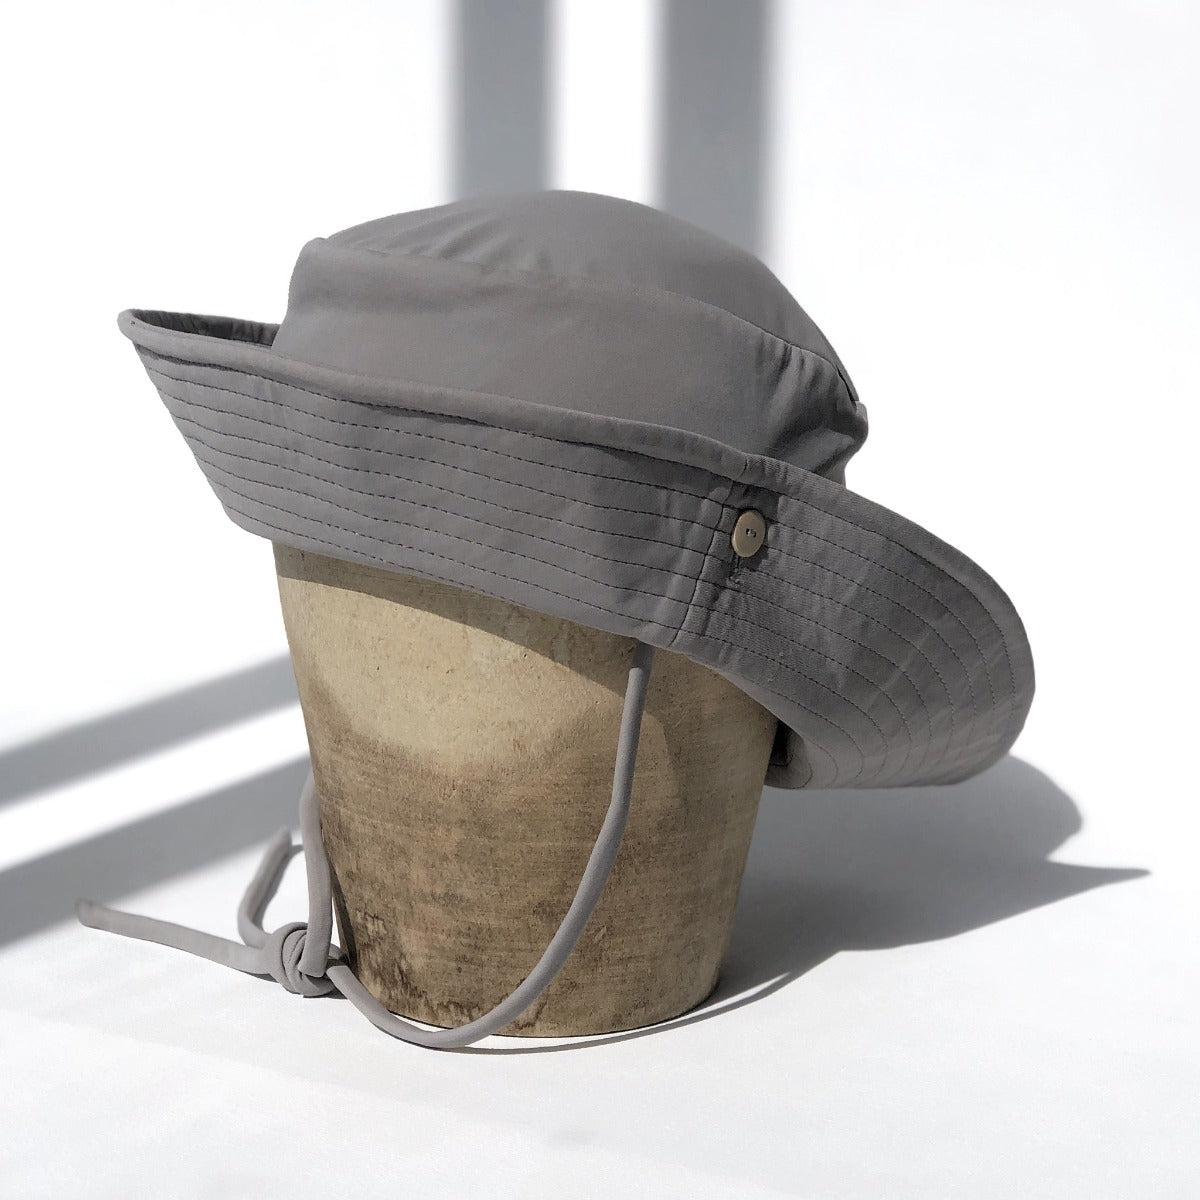 US stockist of Fini the Label's gender neutral, sailor swim hat in mushroom. Features elongated back for added sun protection, wide brim and chin strap. Brim is medium stiffness and can be flipped up at front. Sides can be worn buttoned up for that sailor look.  Made from nylon/spandex and is quick drying.